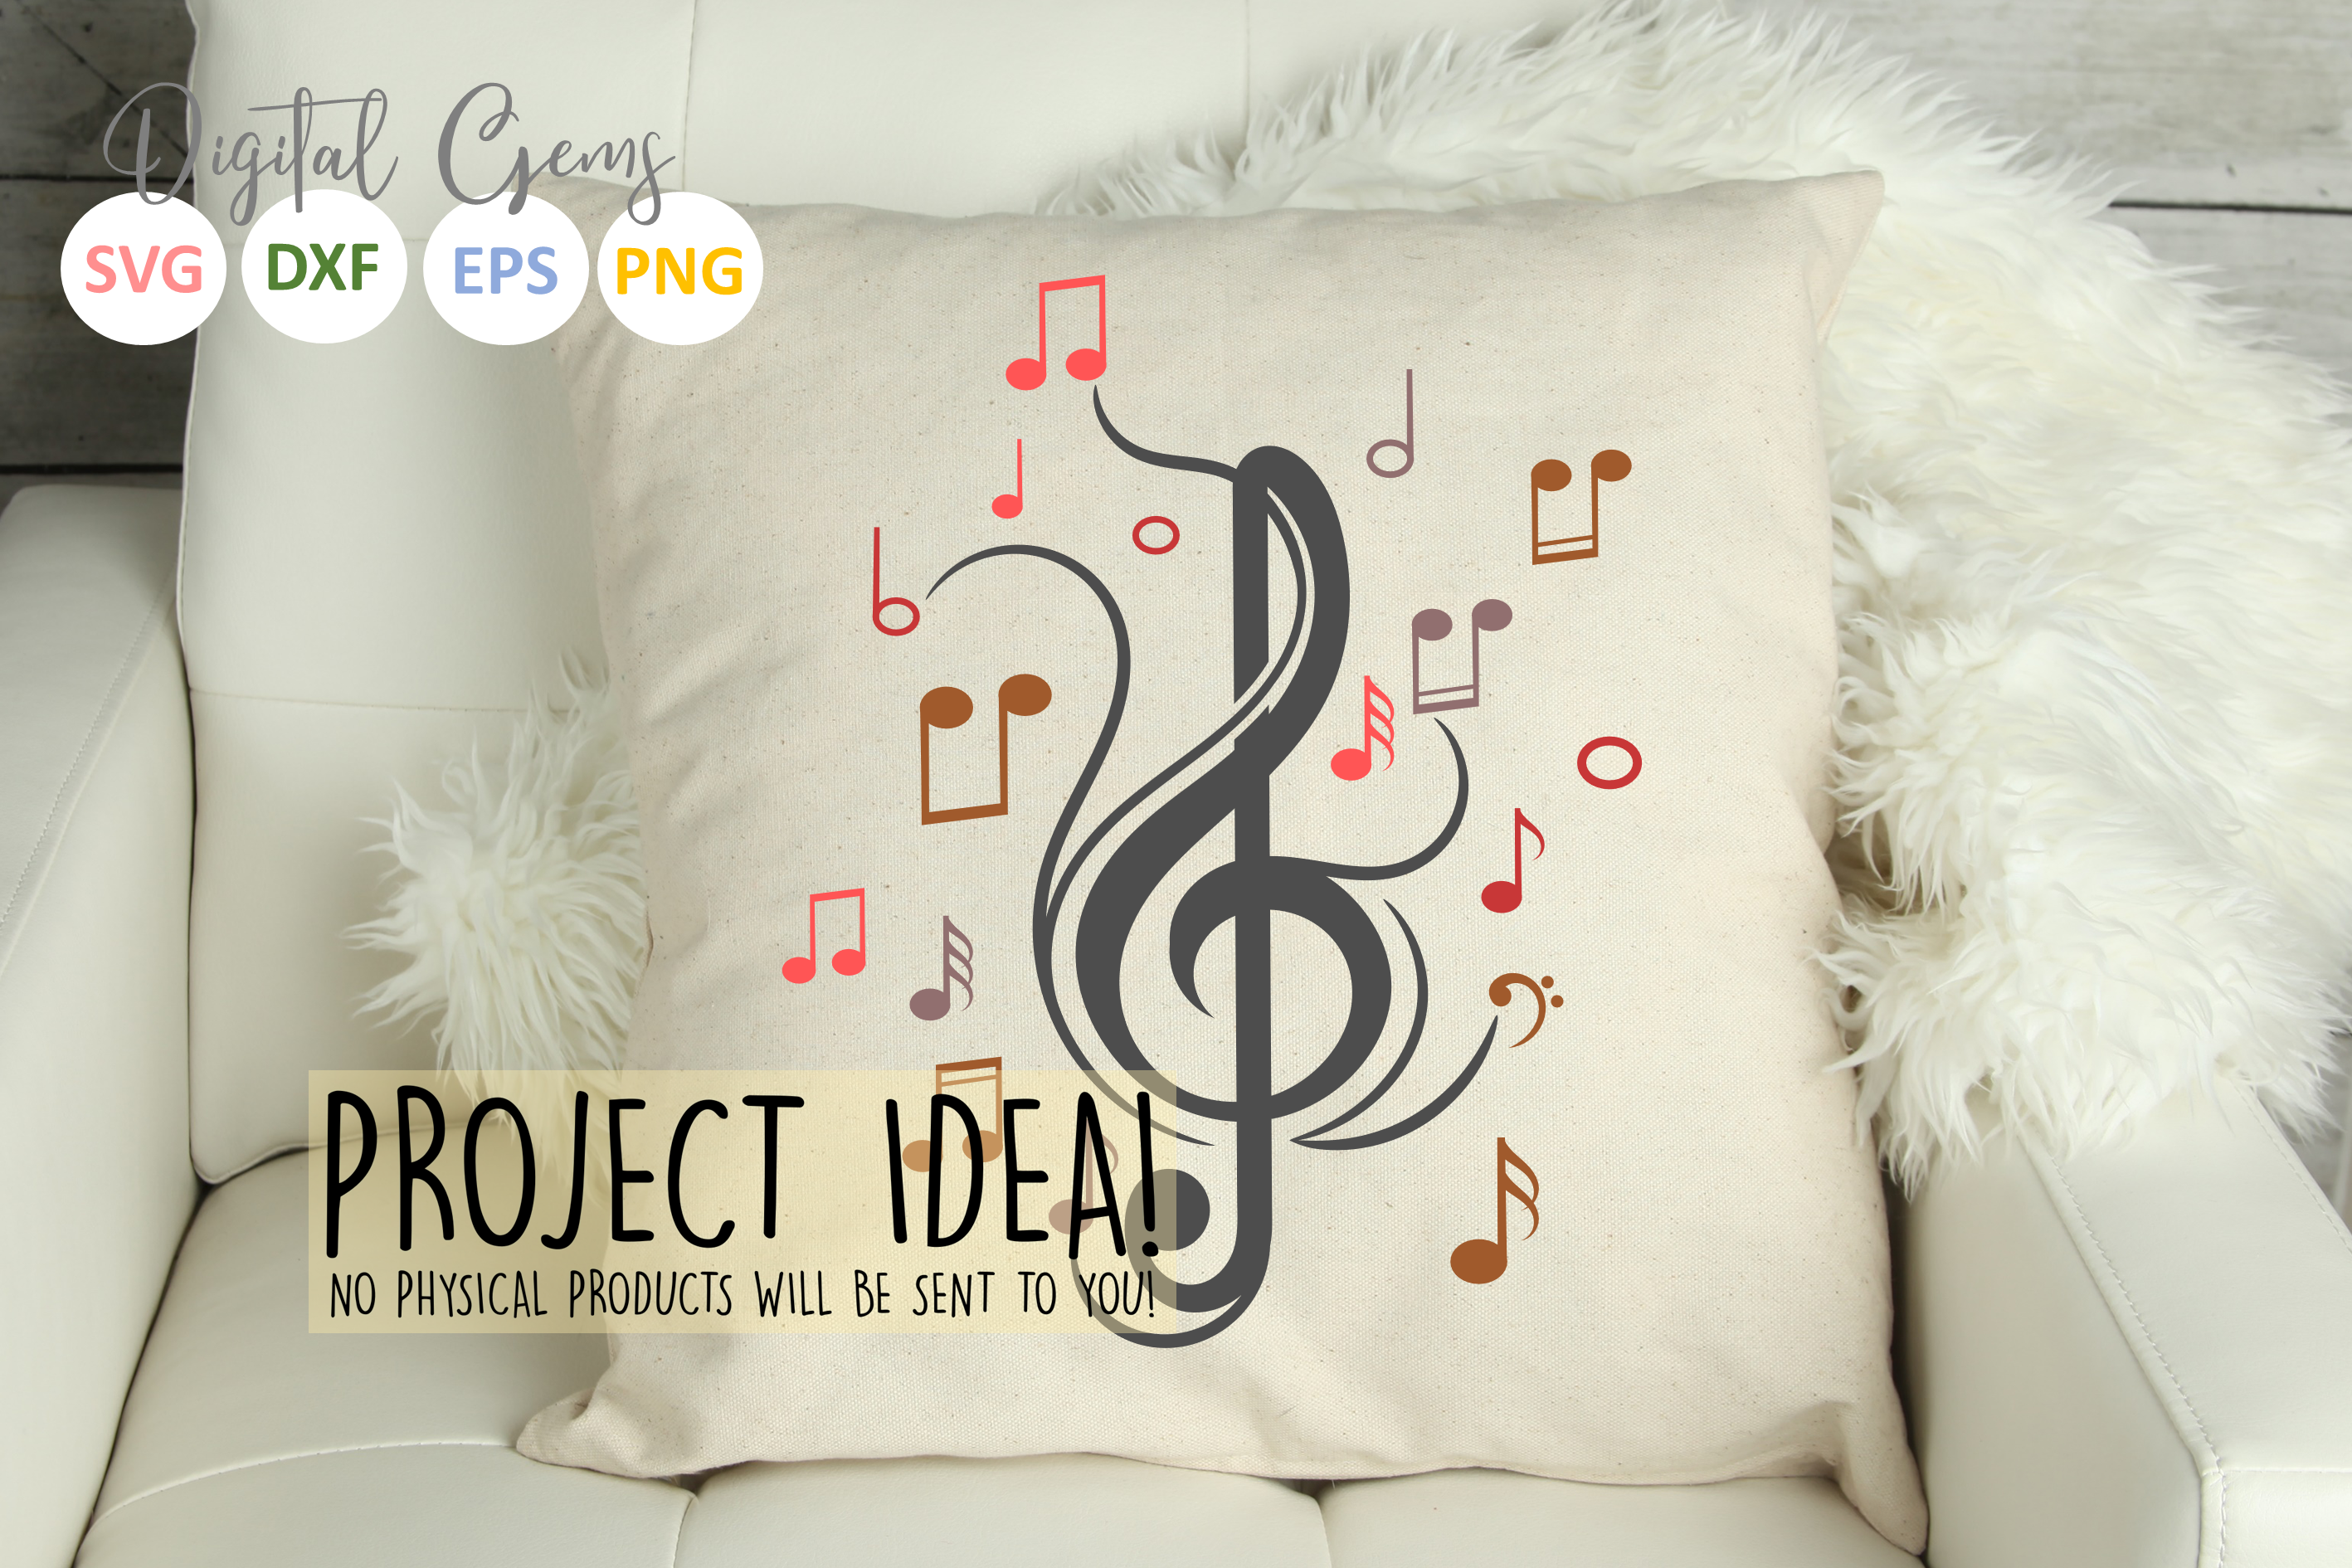 Treble clef with music notes SVG / DXF / EPS / PNG files example image 3